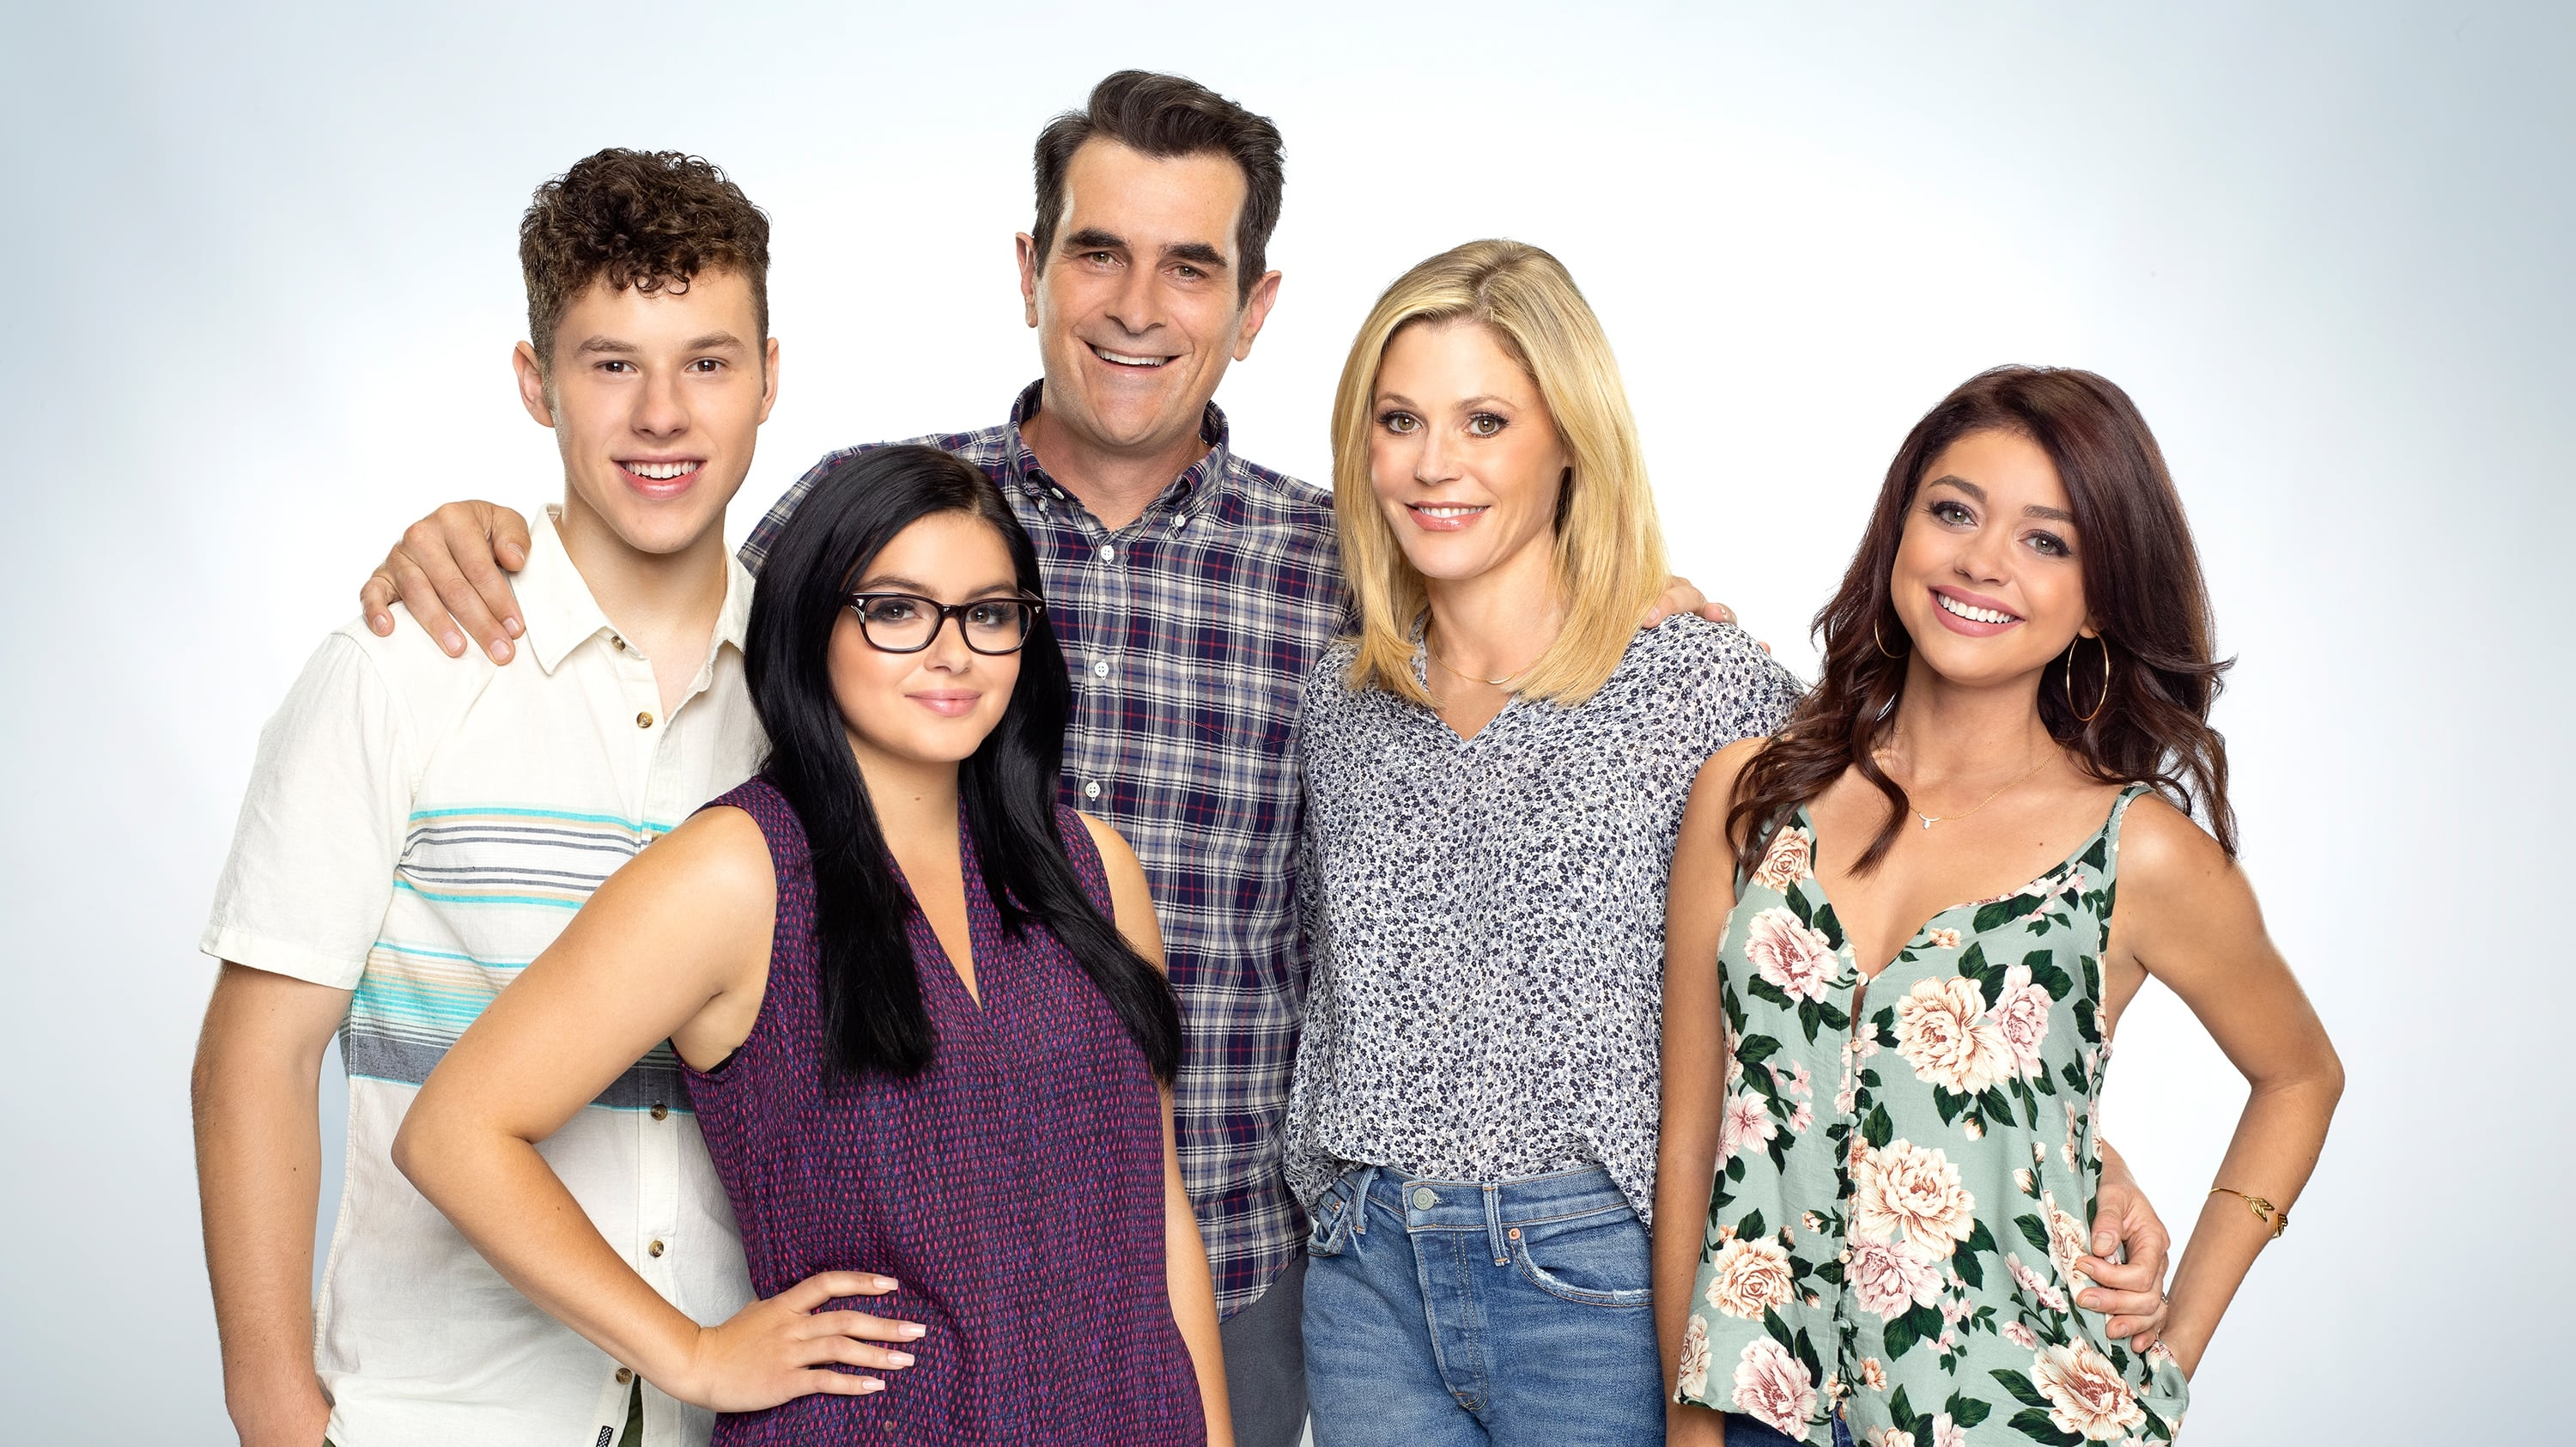 Modern Family - Season 11 Episode 4